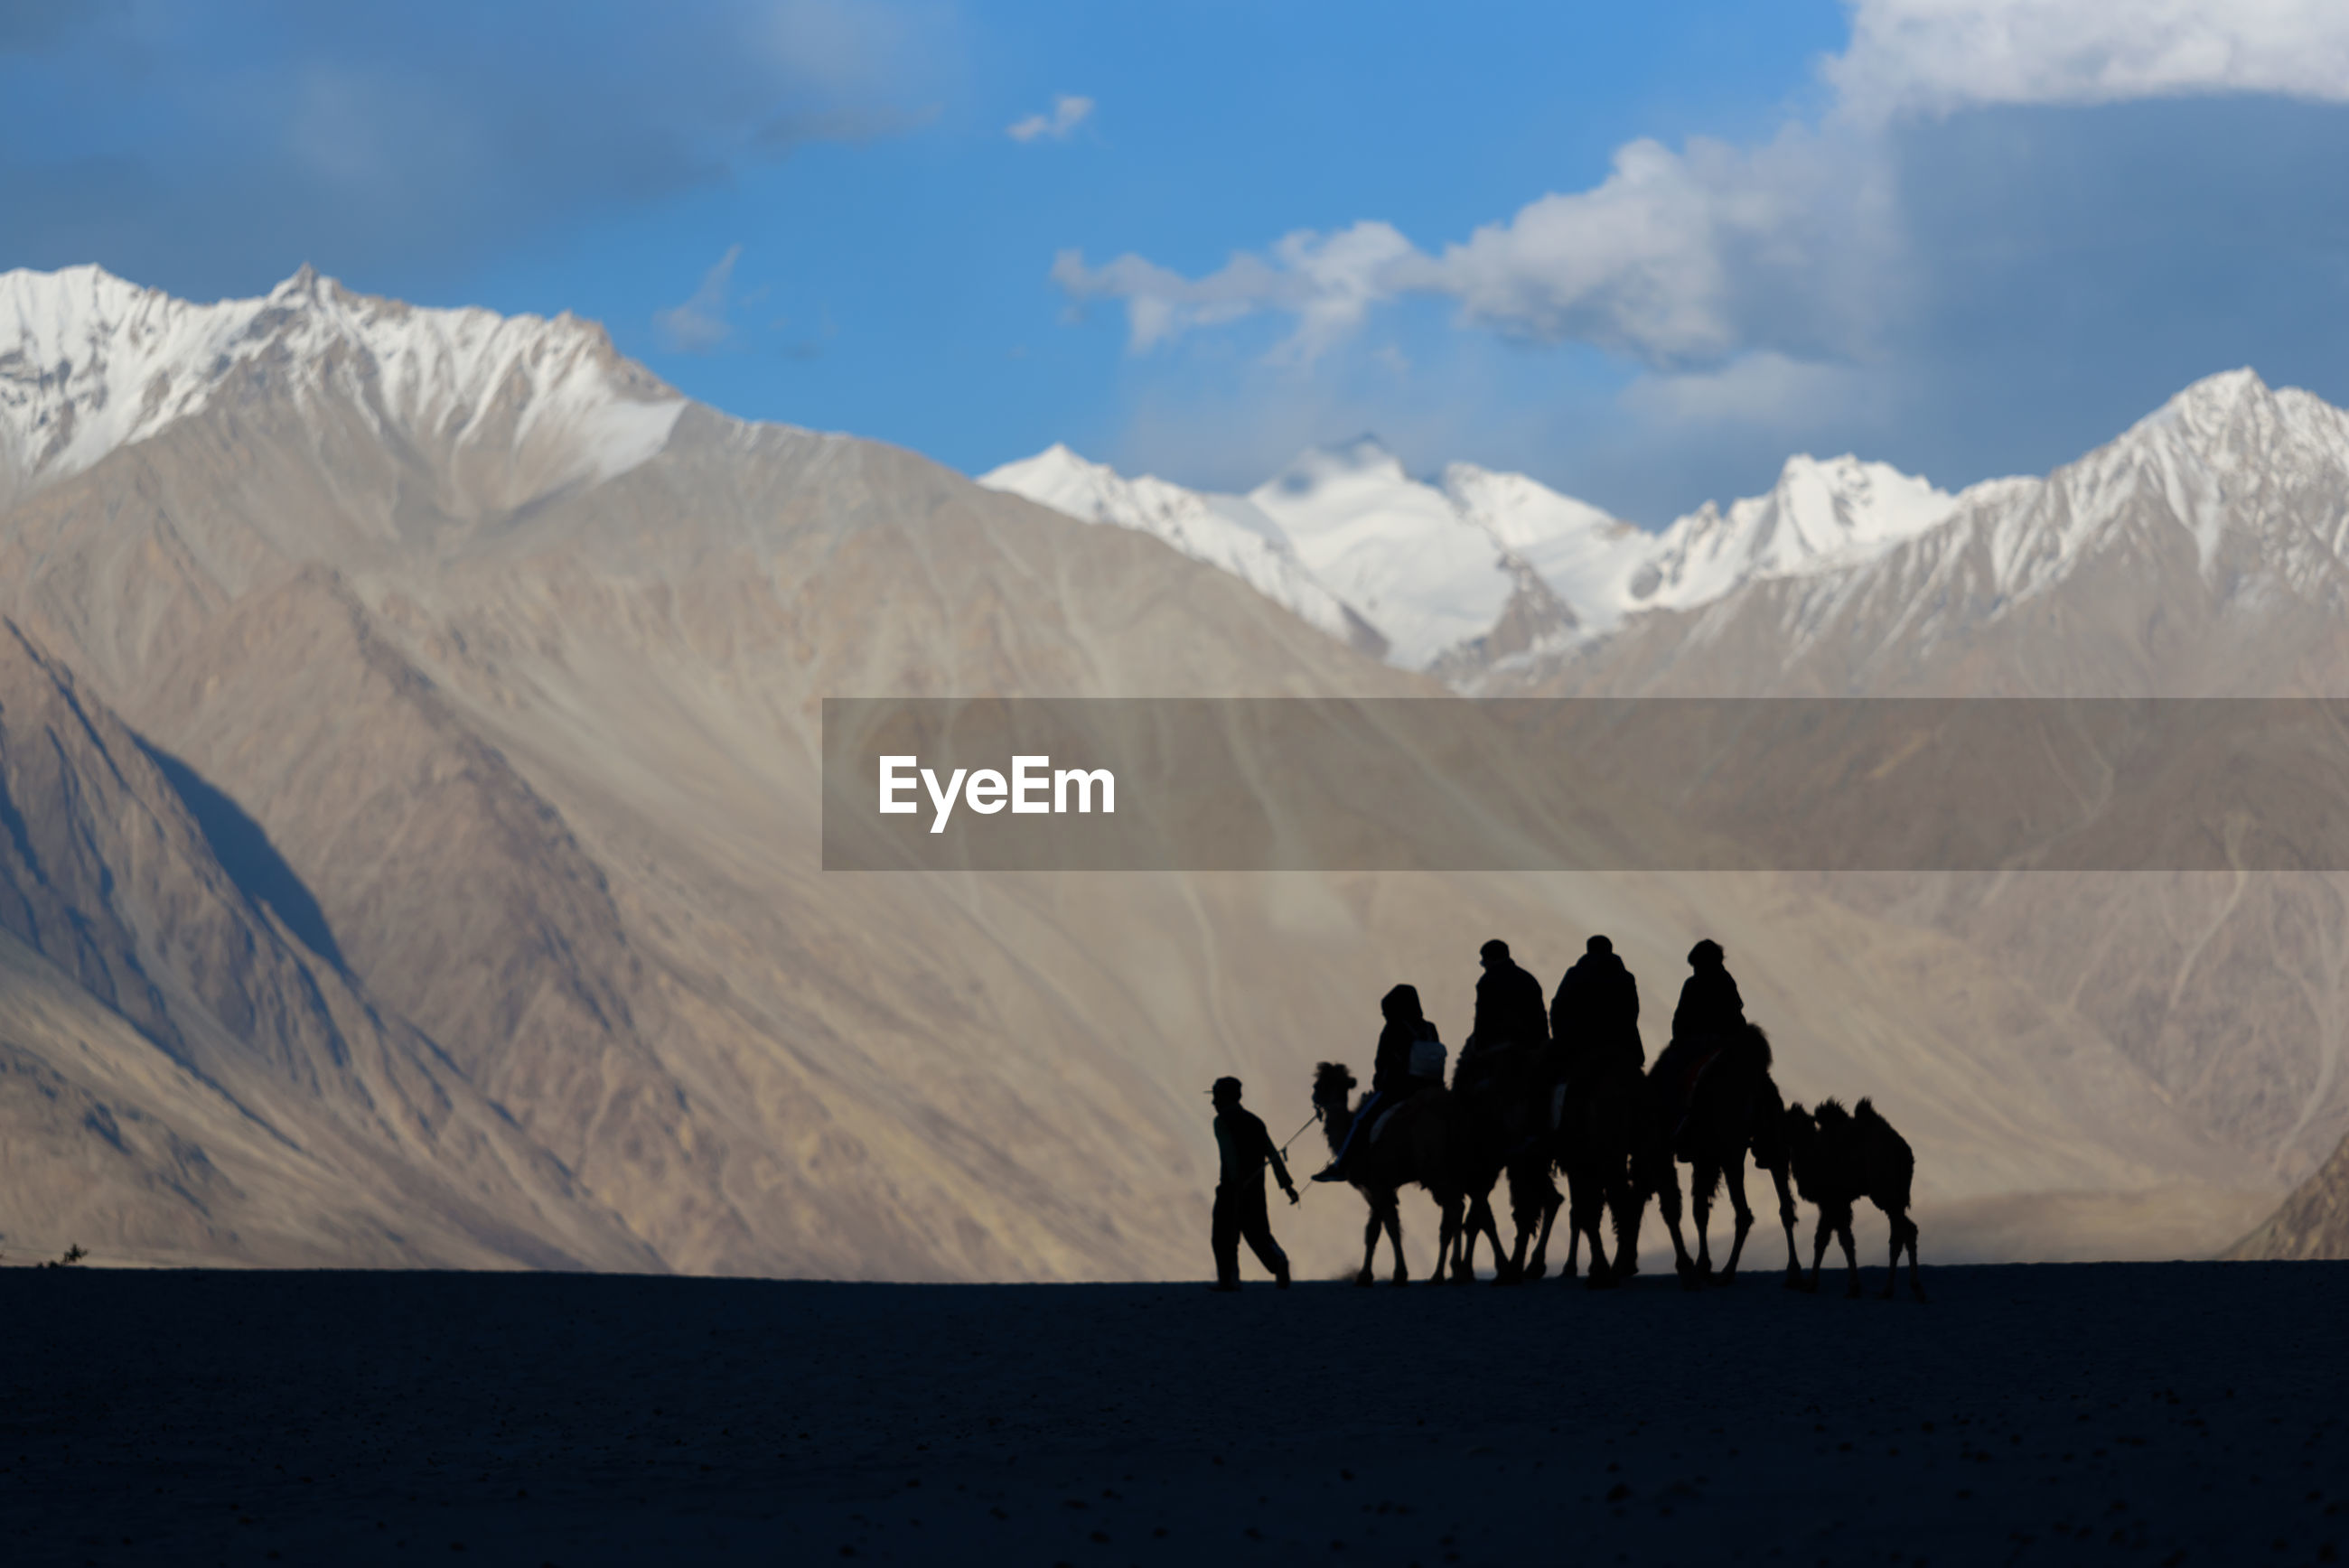 Silhouette people riding camels in desert against mountains